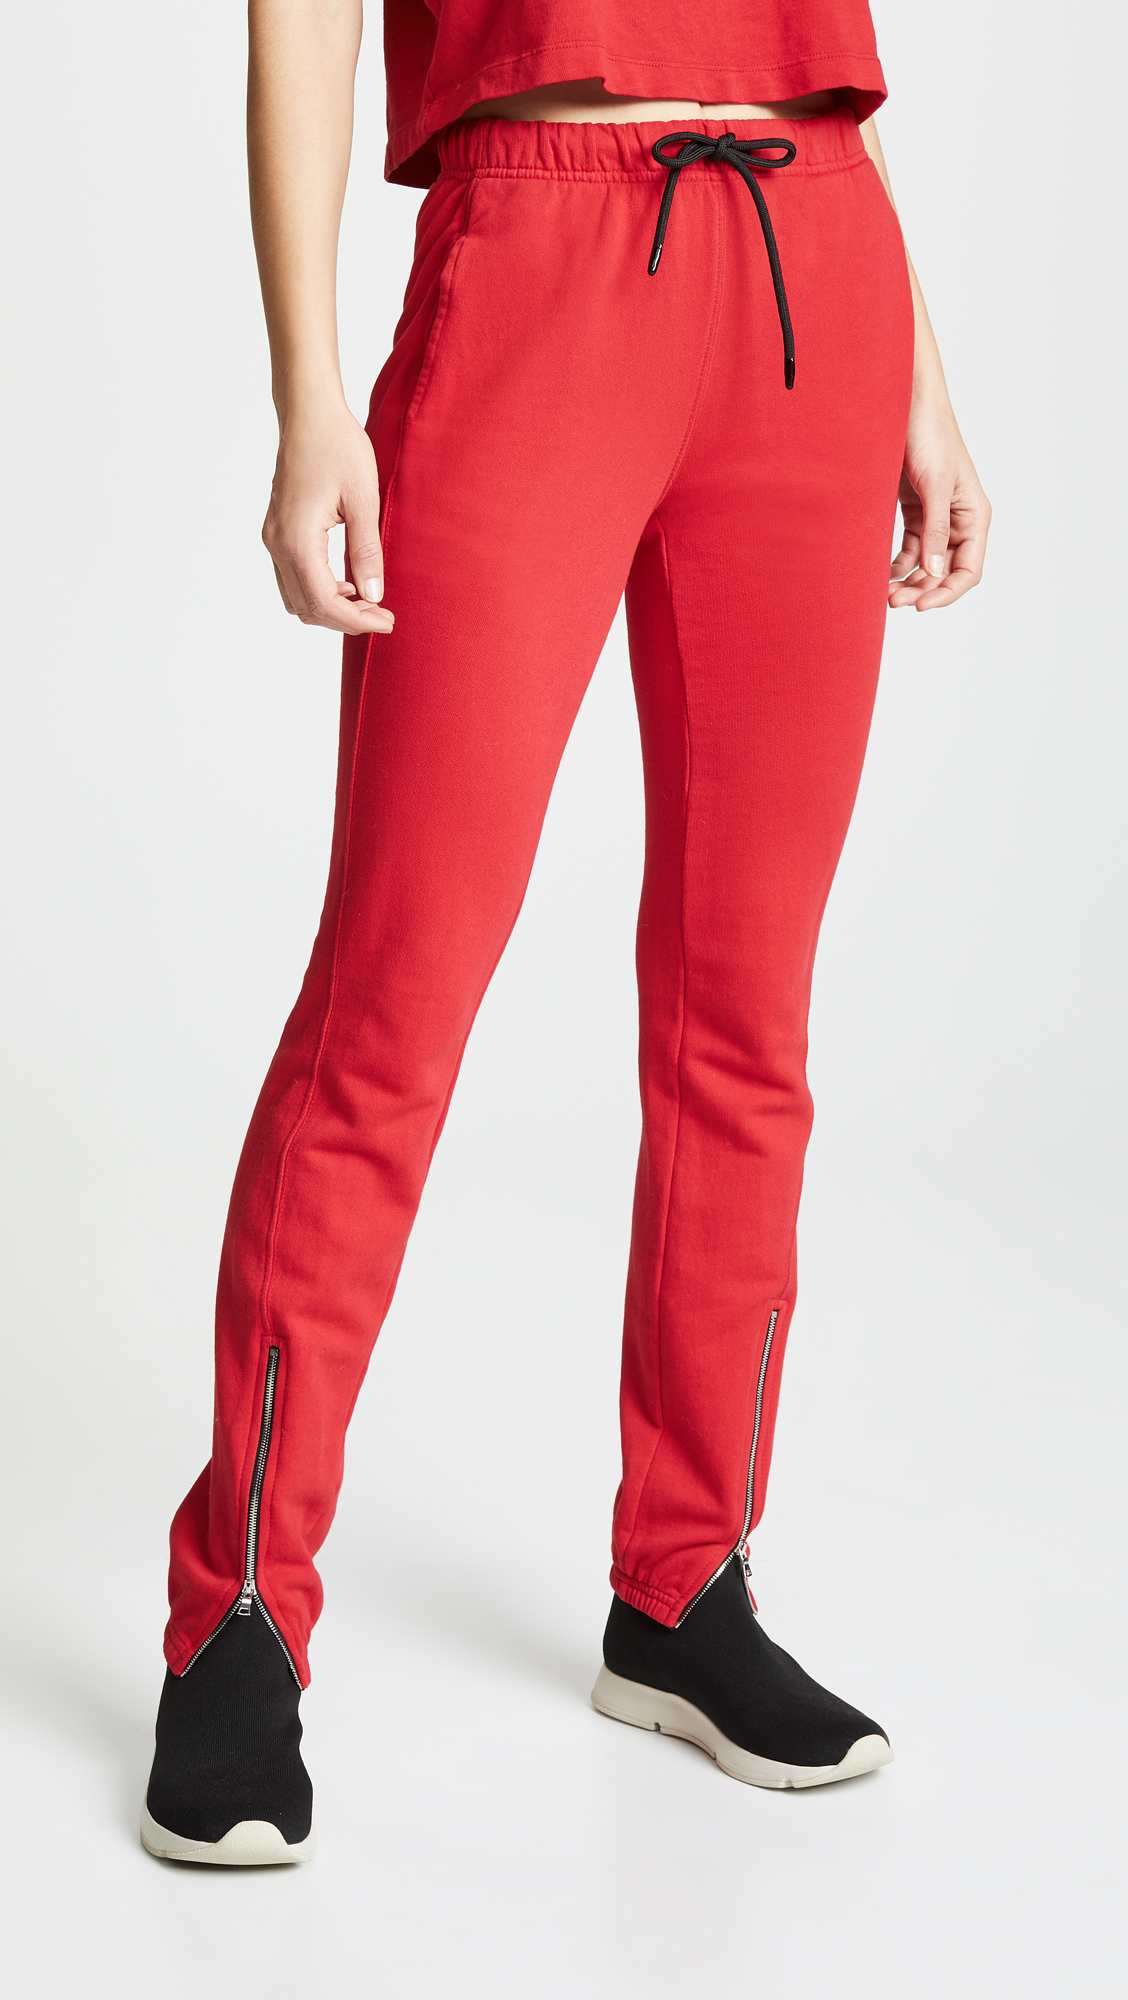 Milan Zip Joggers by Cotton Citizen, available on shopbop.com for $225 Olivia Culpo Pants Exact Product